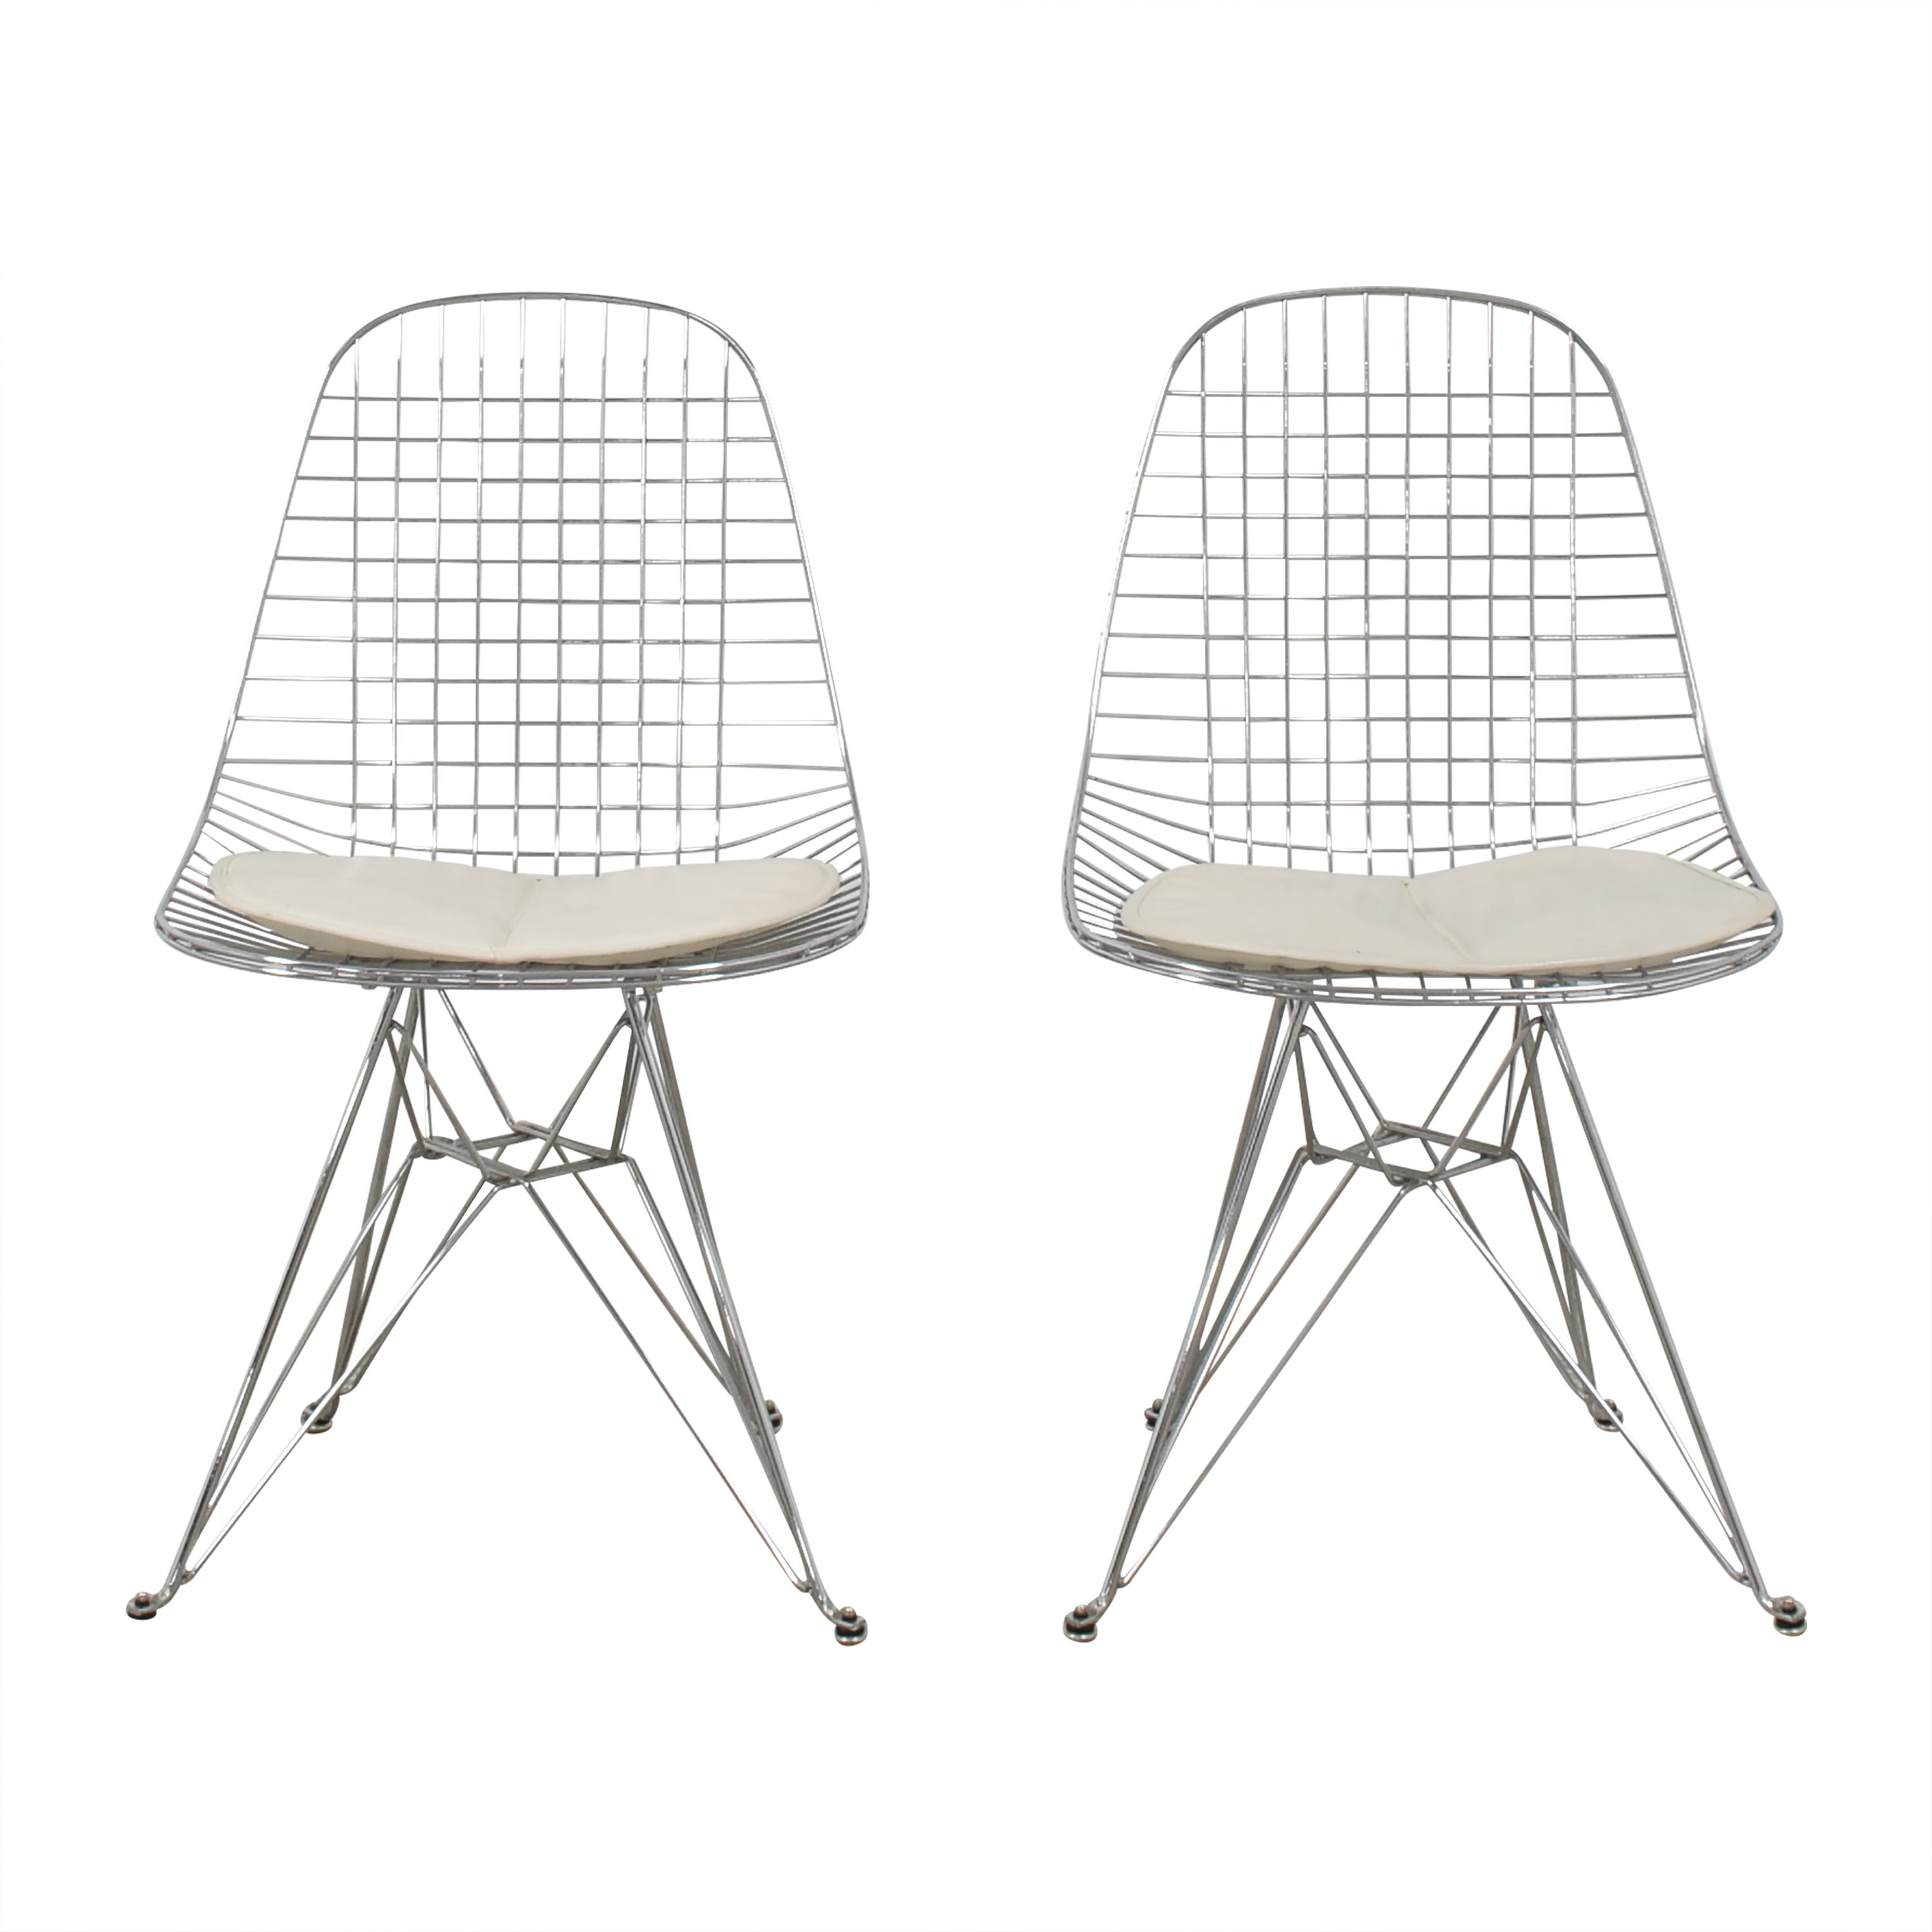 Modernica Modernica Case Study Wire Eiffel Chairs with Seat Pads second hand